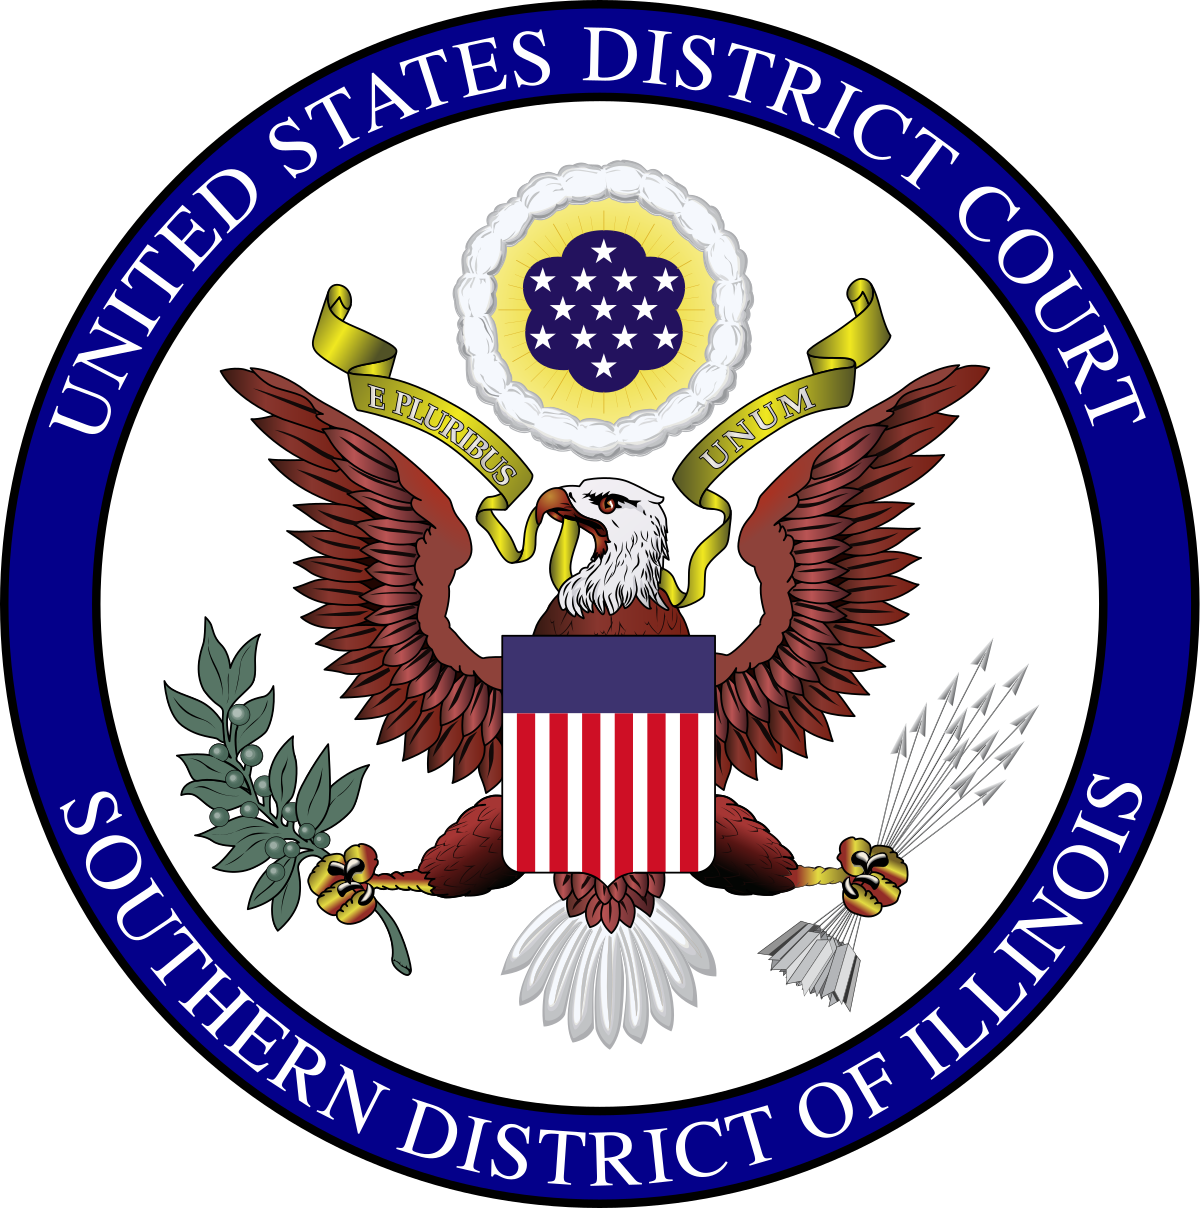 U.S. District Court - Southern District of Illinois